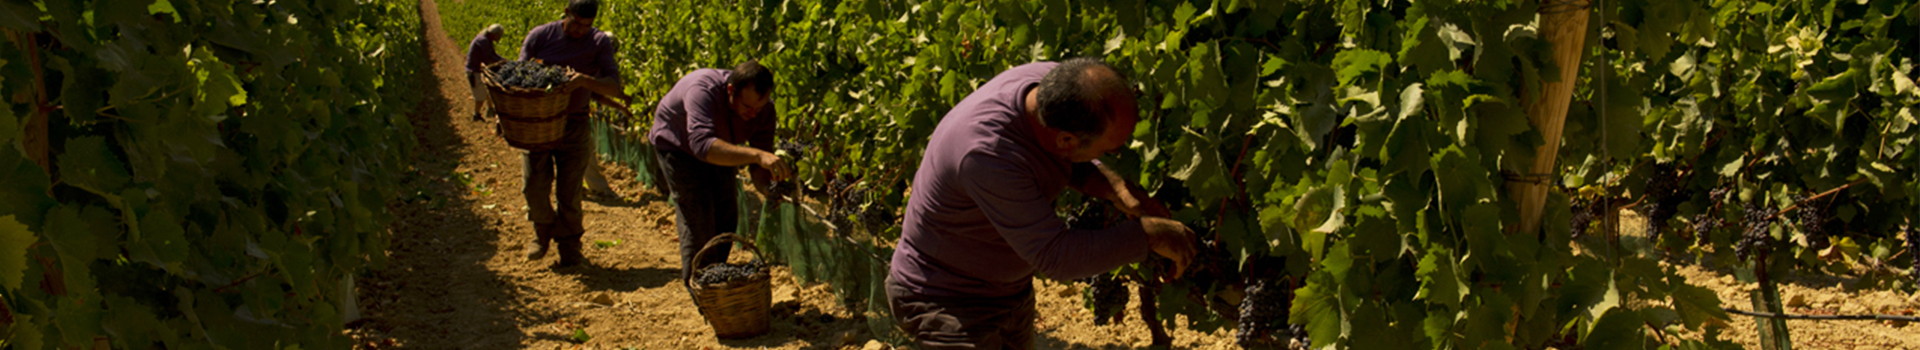 HARVEST 2020FROM TUSCANY TO SICILY IT WILL BE AN ESPECIALLY MEMORABLE VINTAGE